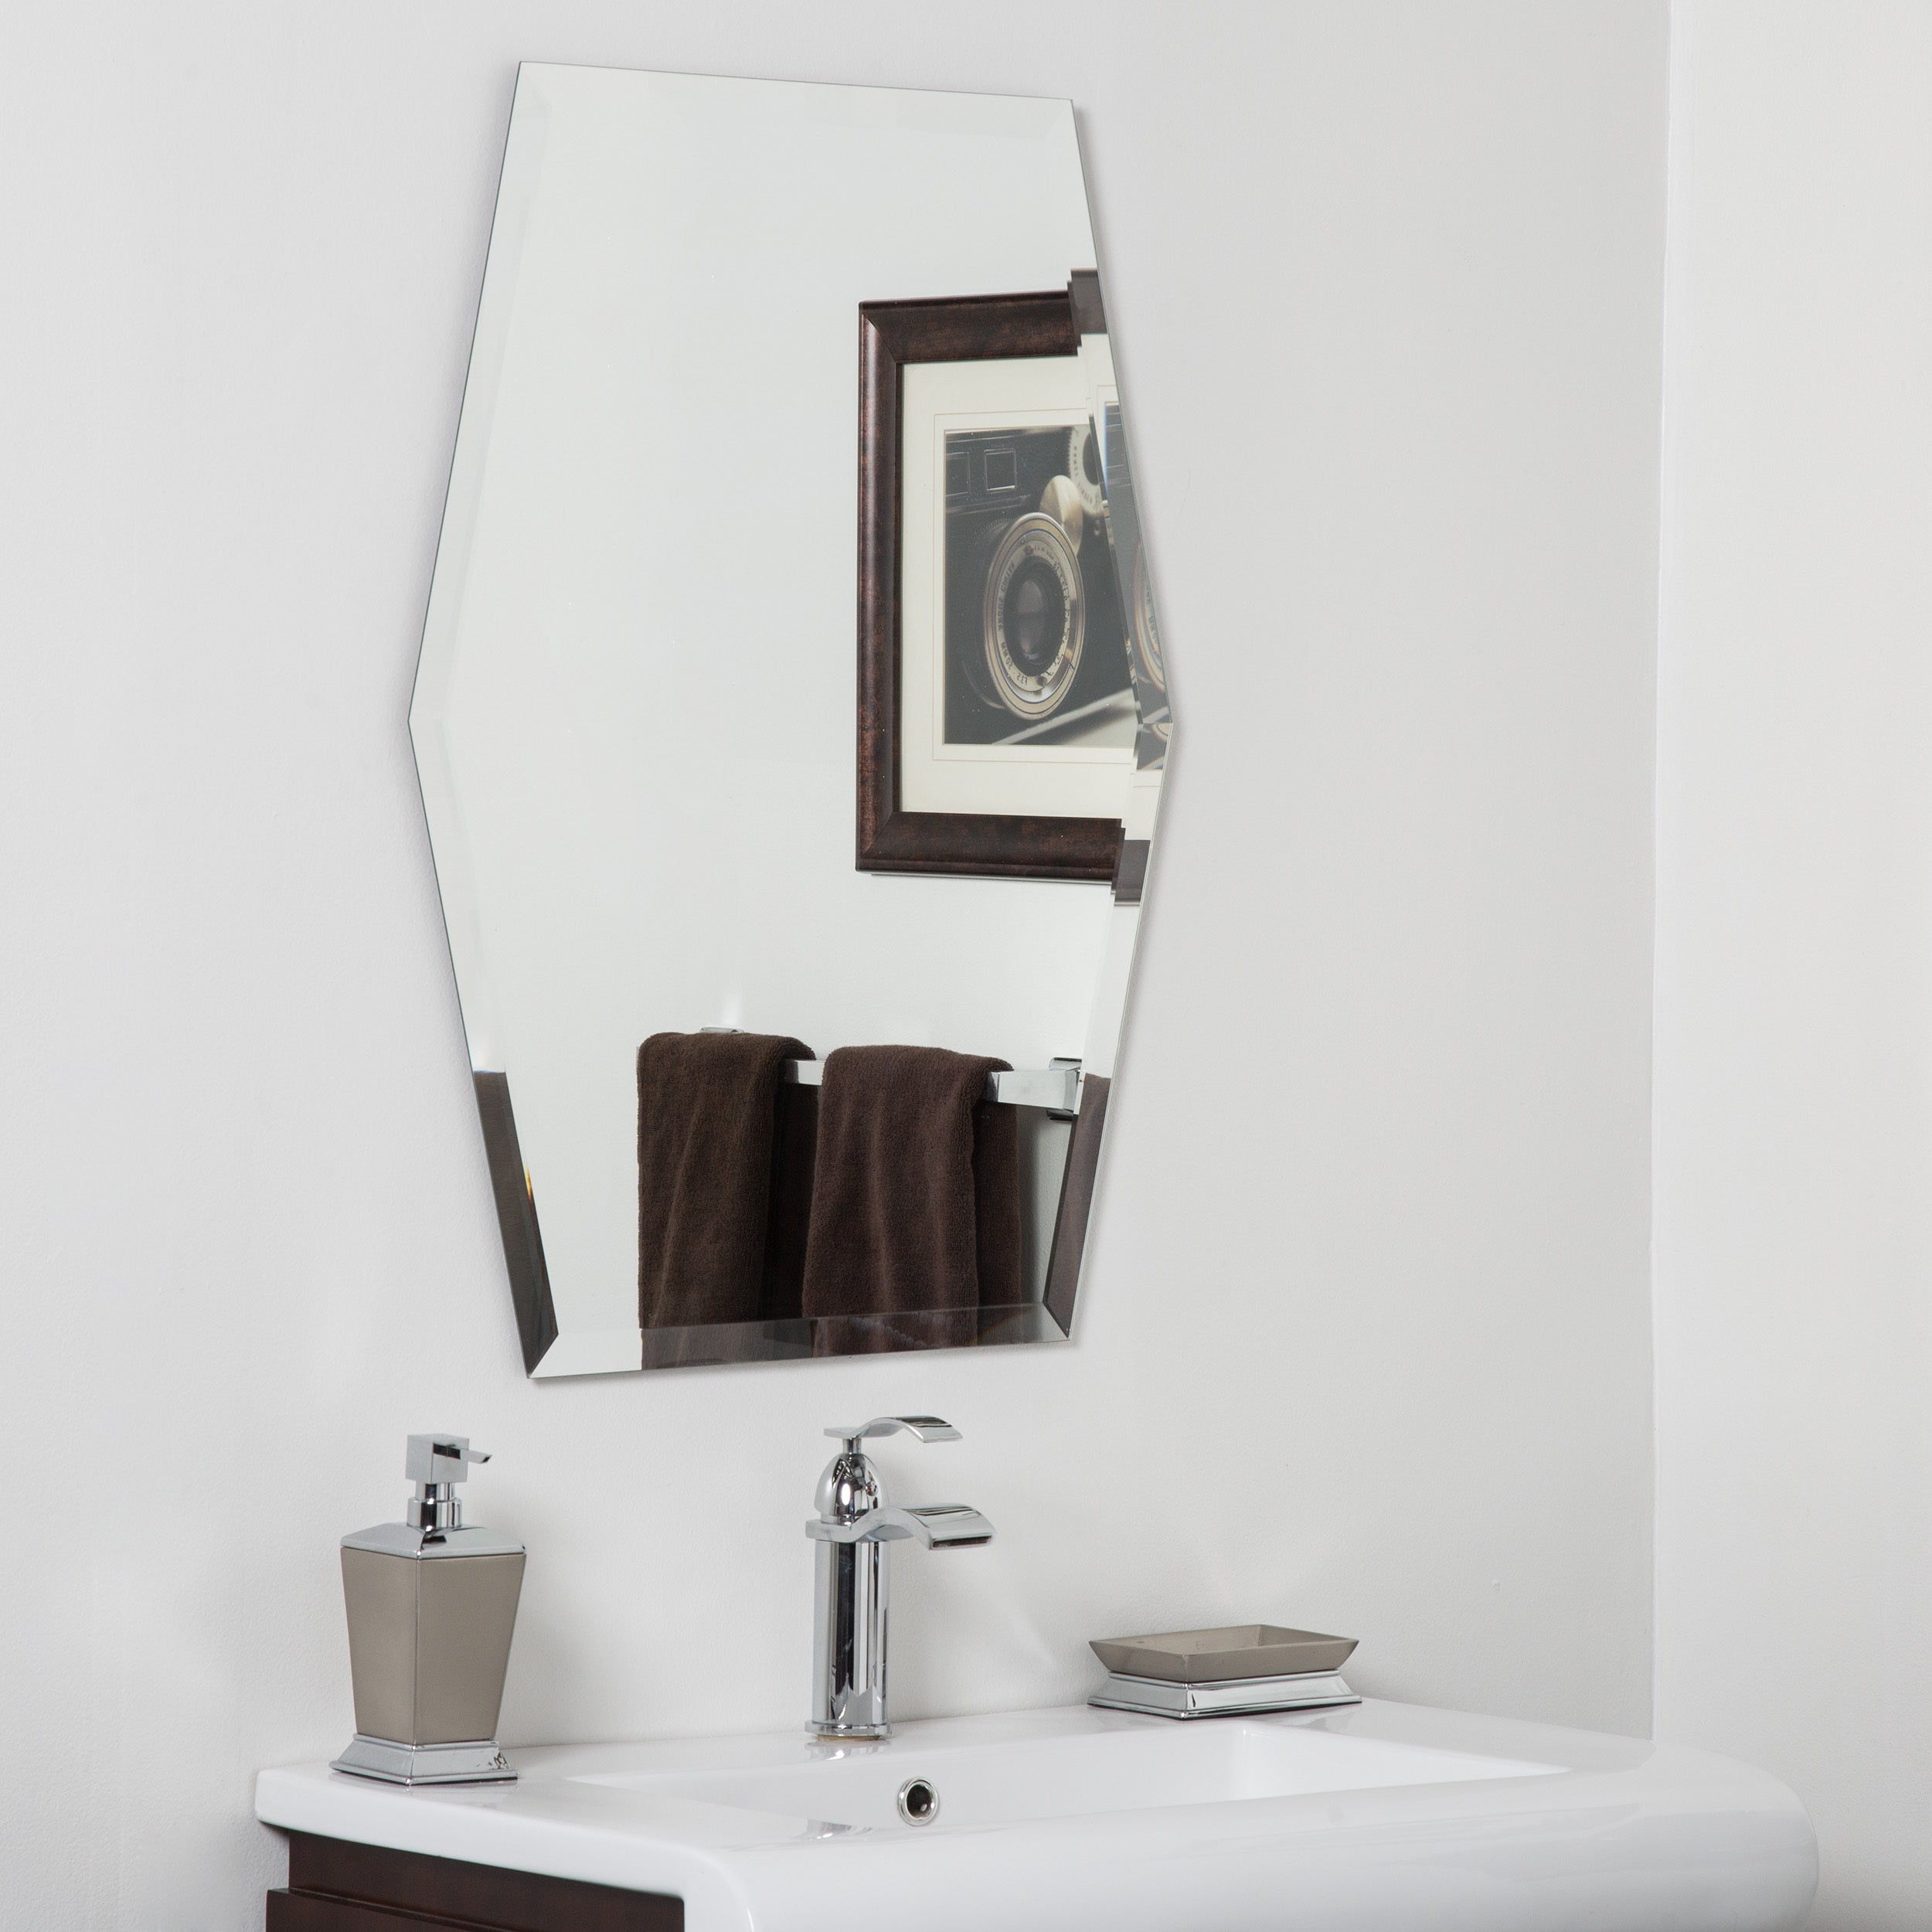 Century Clear Glass Modern Bathroom Mirror Silver 31hx23wx 5d On Sale Overstock 13002723